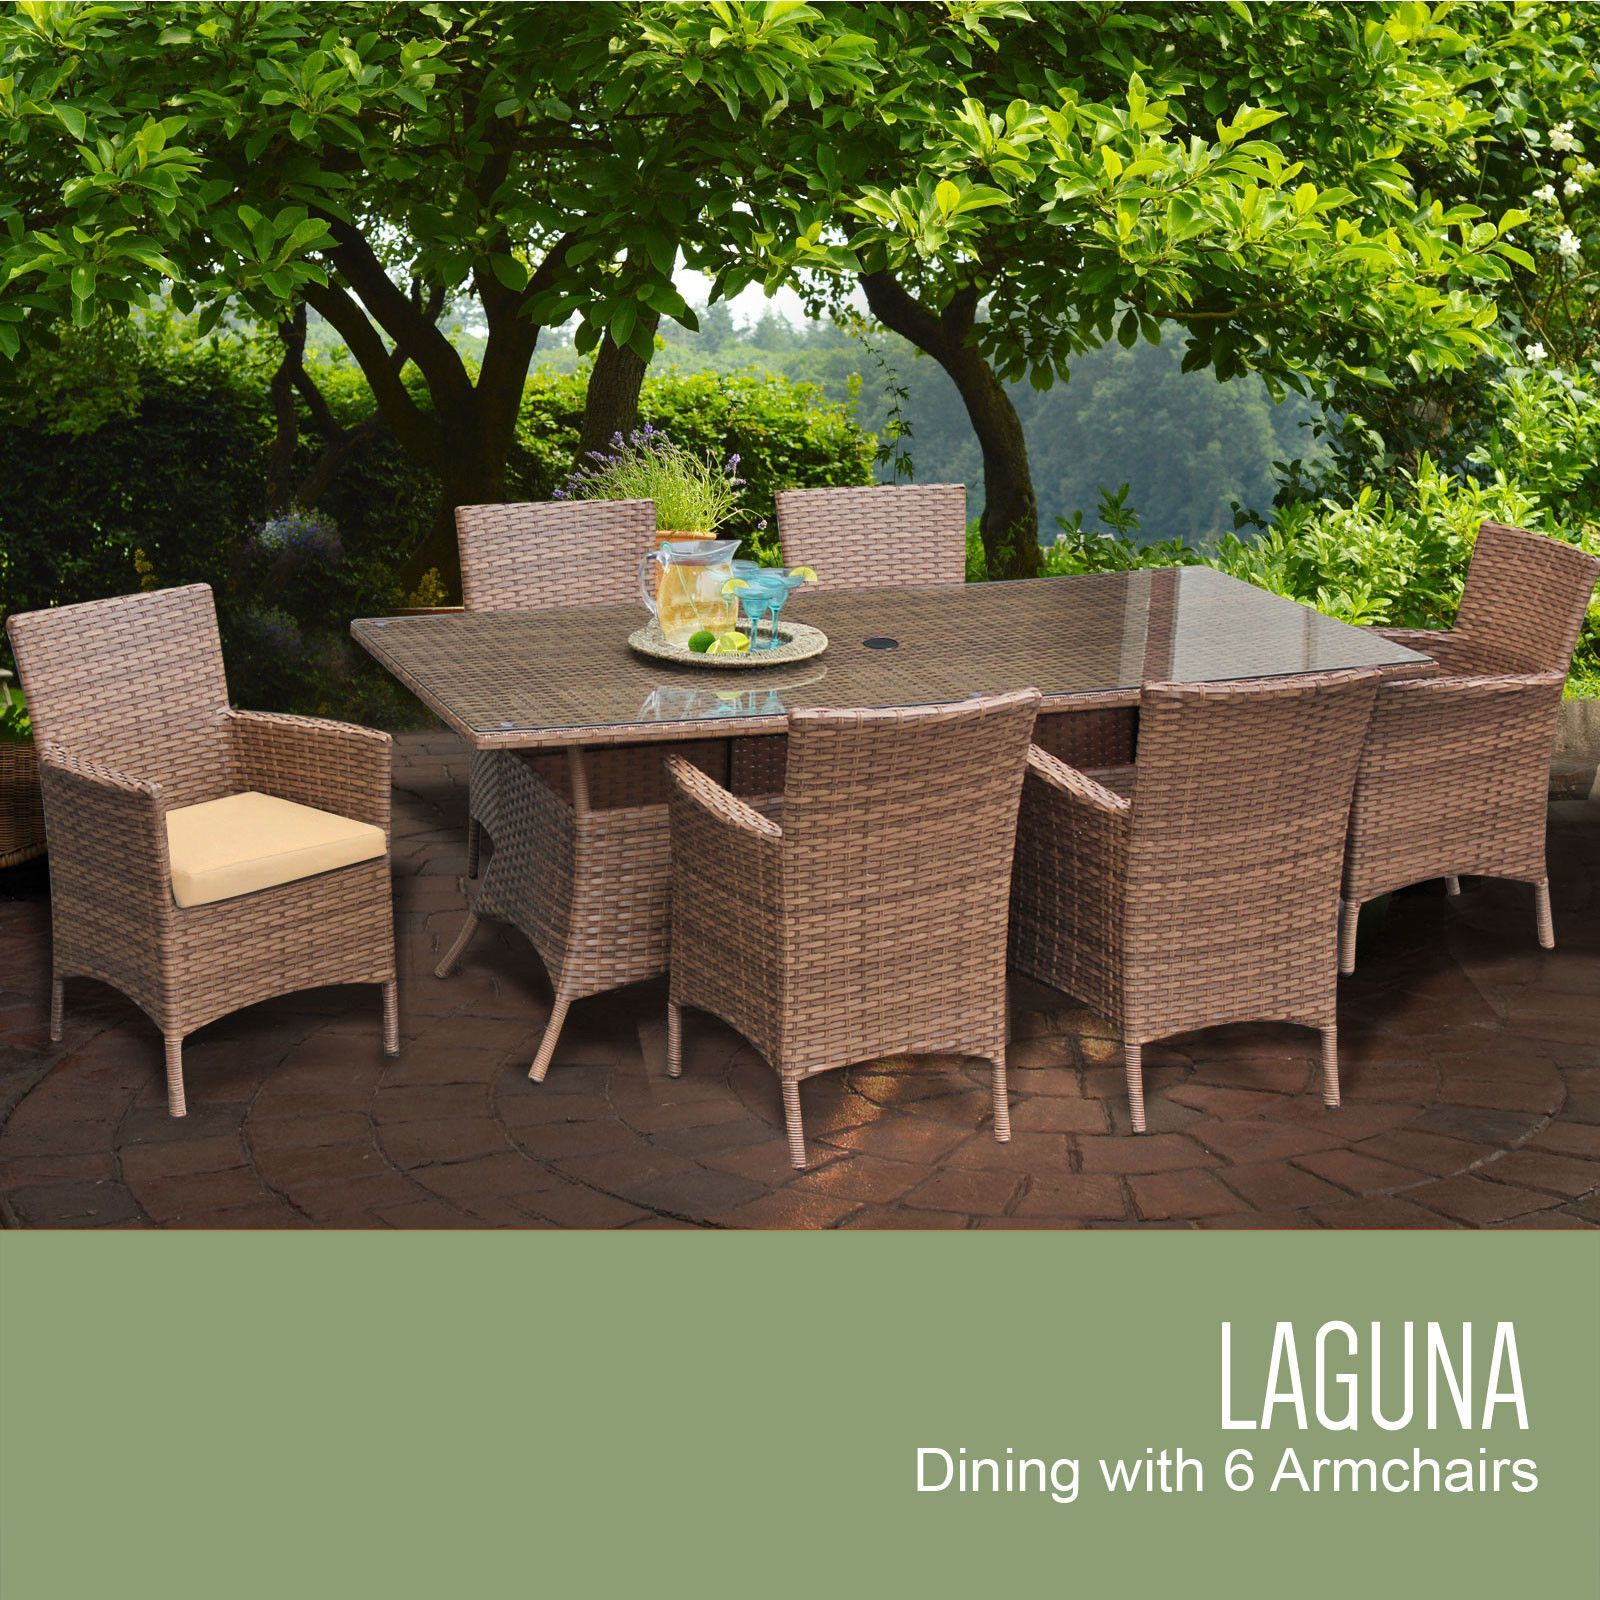 TKC Laguna Rectangular Outdoor Patio Dining Table with 6 Chairs, Sesame